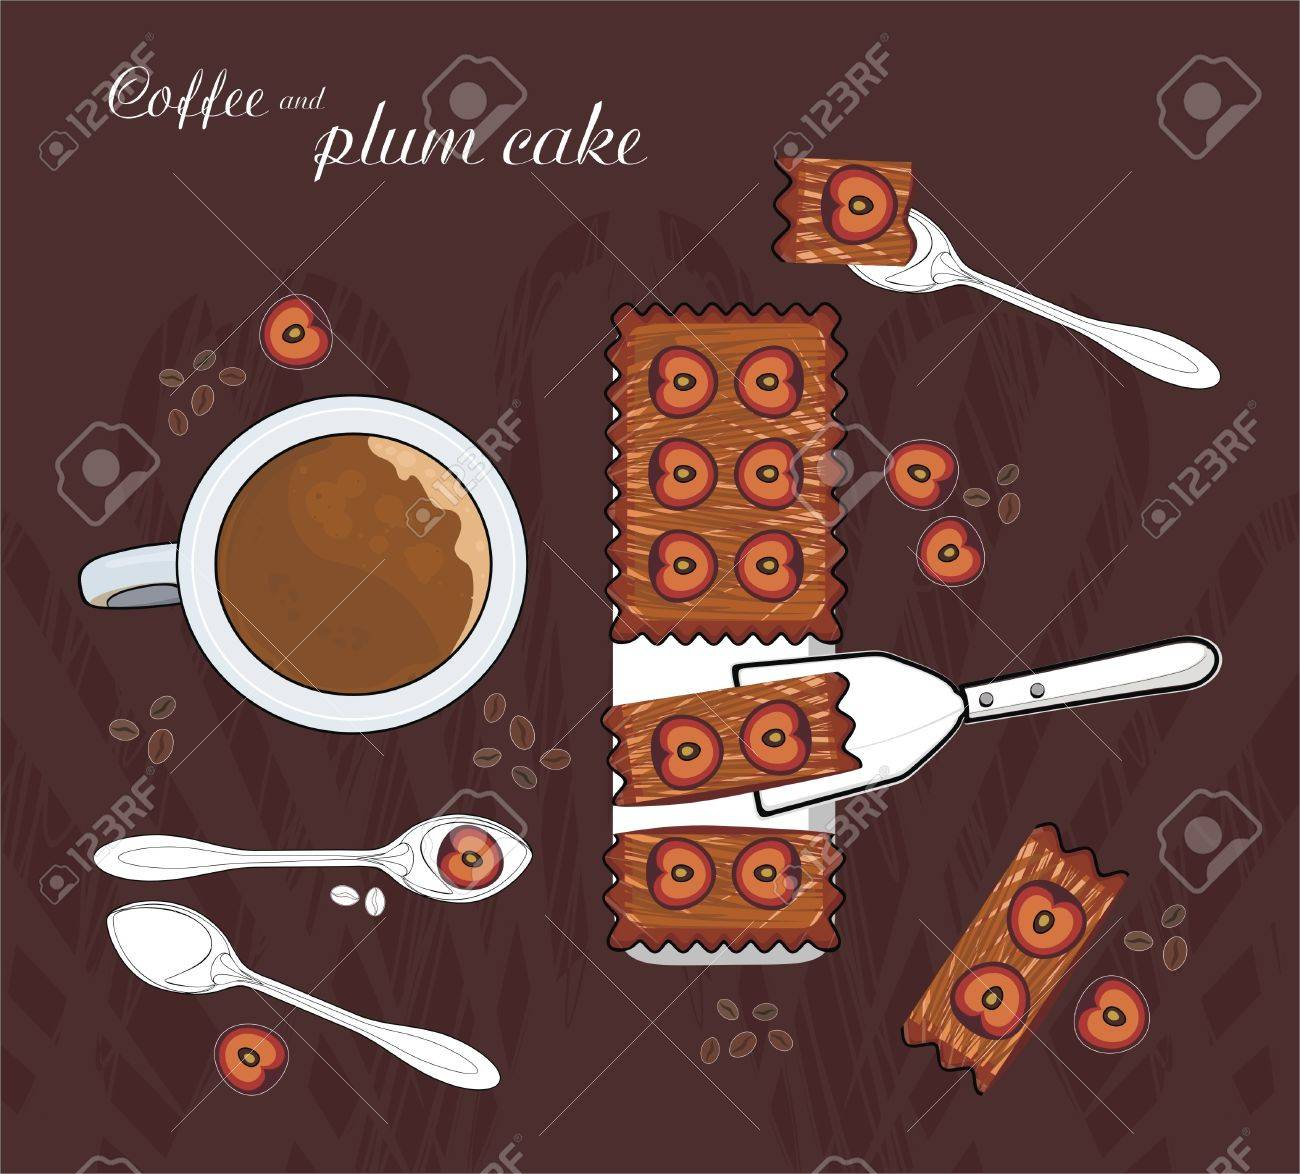 coffee with milk and plum cake Stock Vector - 11813175